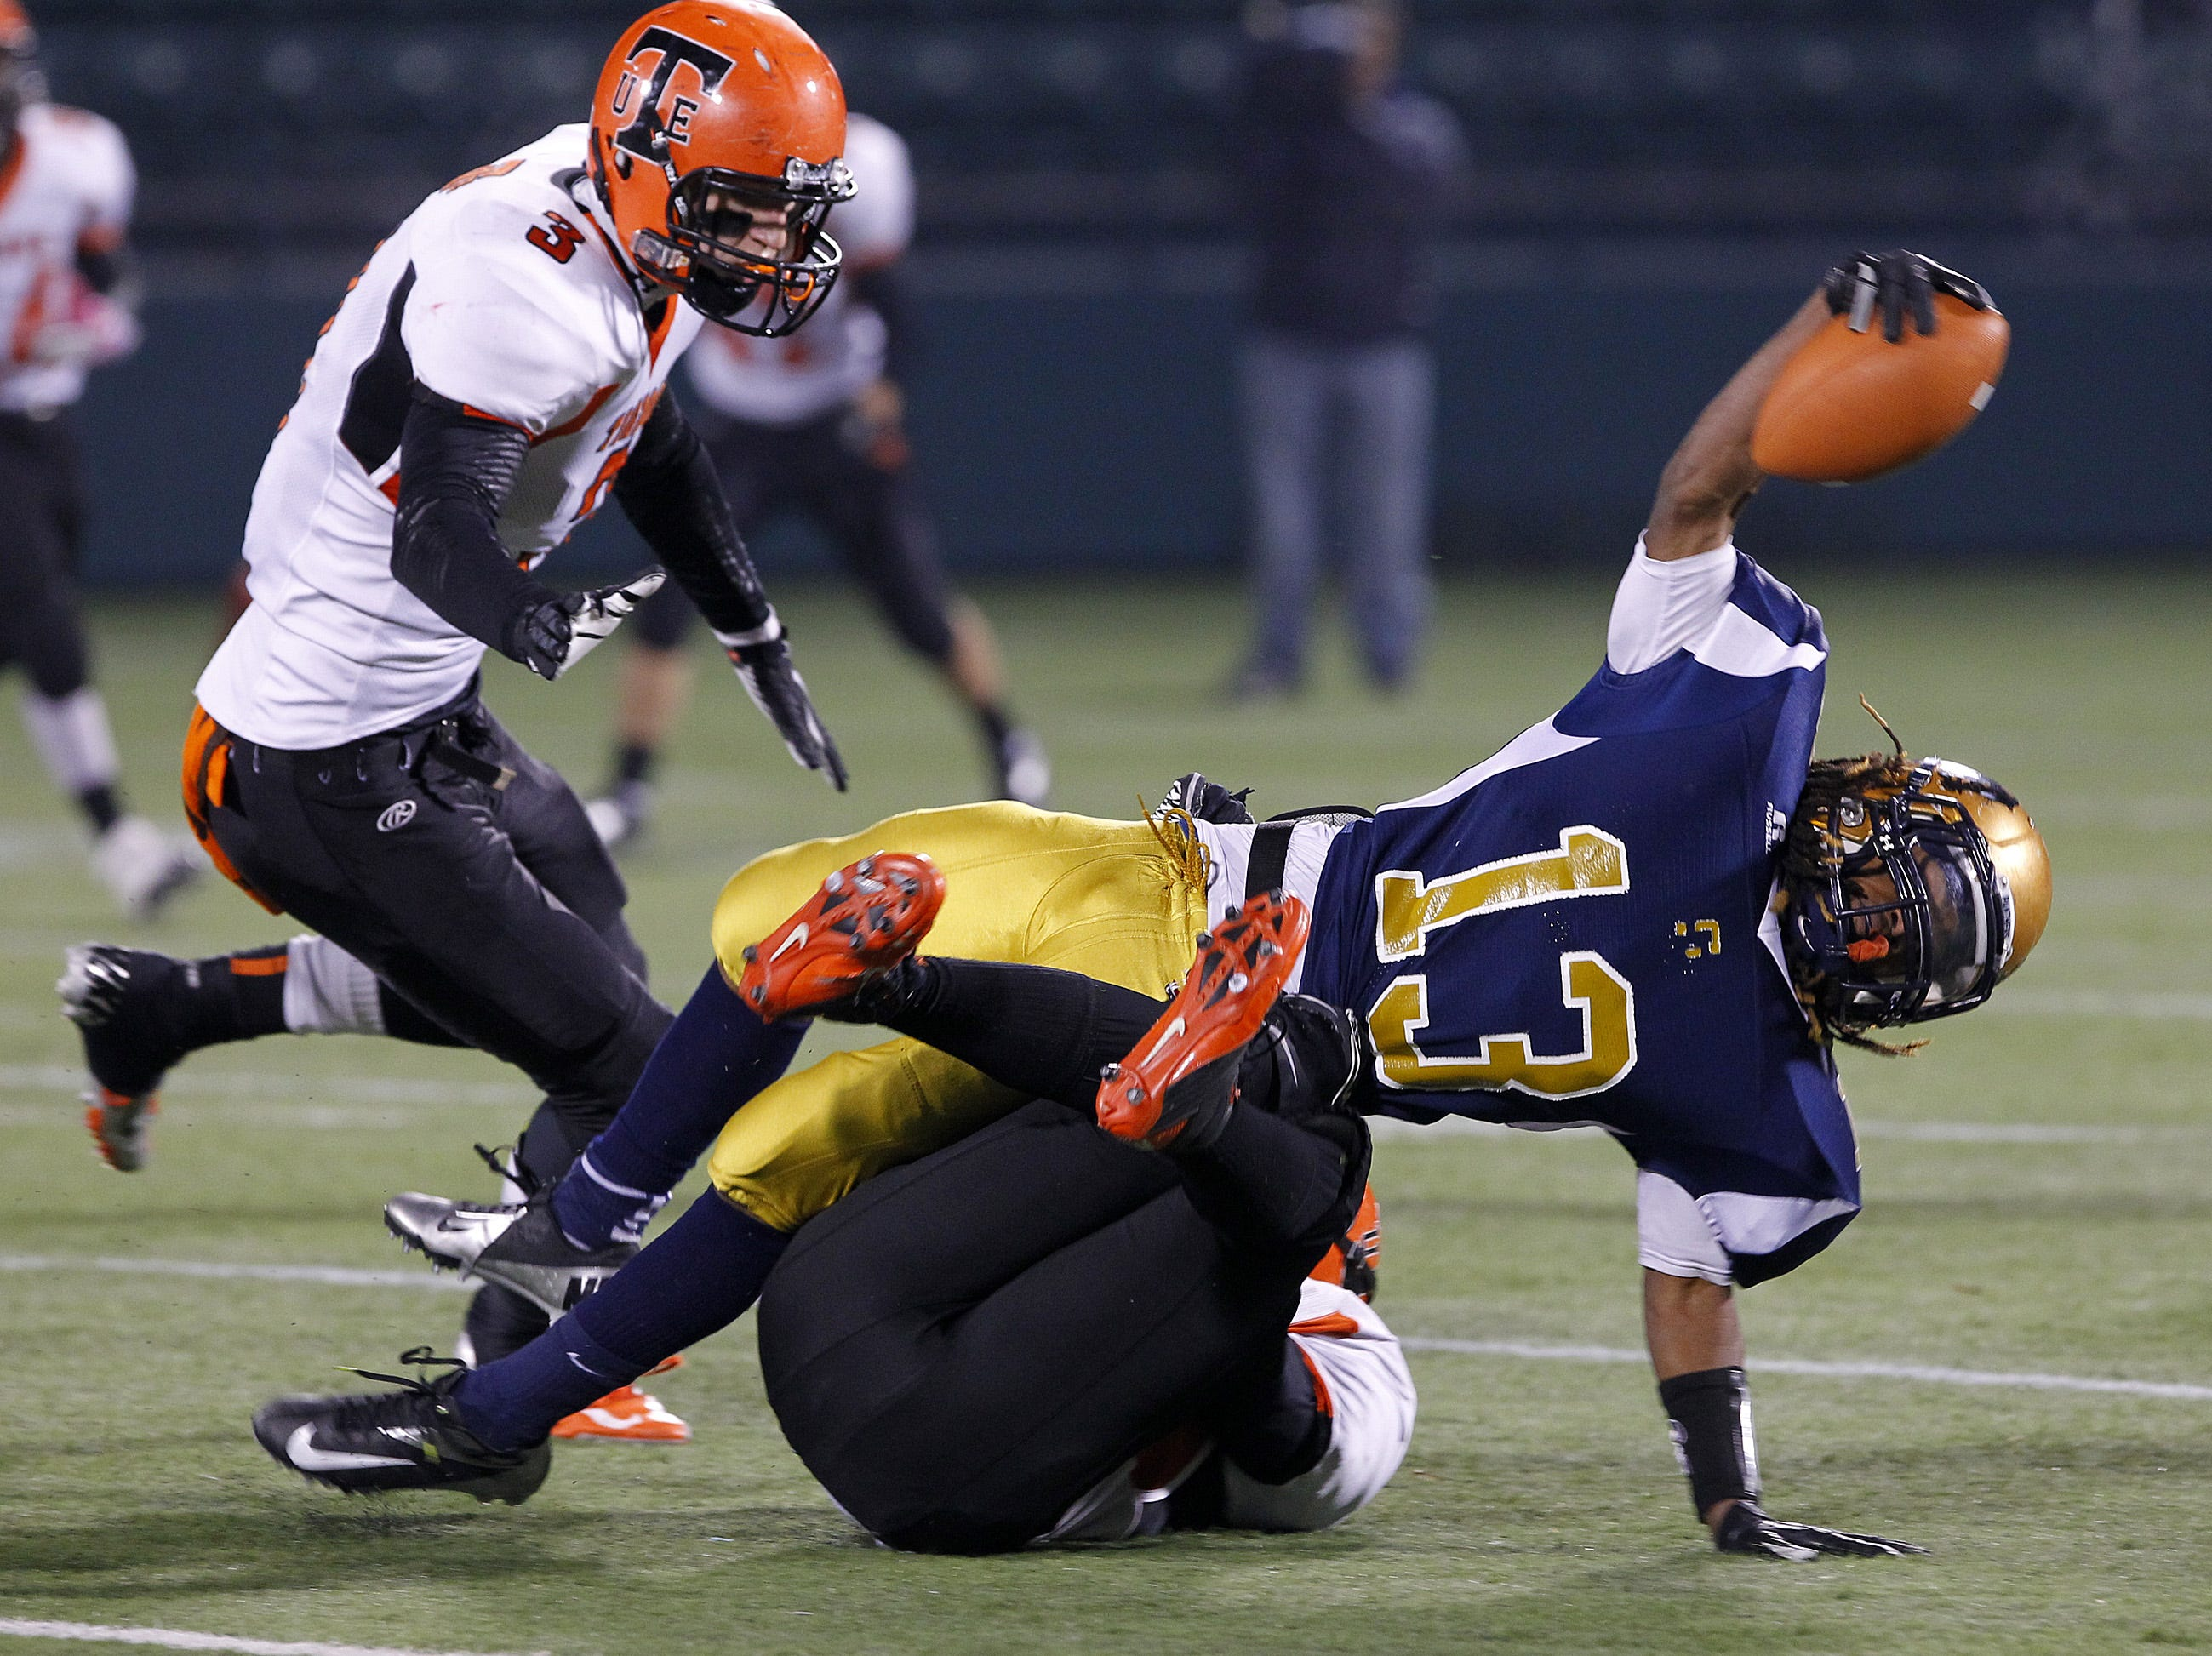 Sweet Home's Kahlil Humphrey, right, runs over Union-Endicott's Michael Cooper for yardage before teammate Caleb Scepaniak can lend support during NYS Class A semifinal playoff football action football action at Sahlen's Stadium in Rochester Friday evening, November 16, 2012.